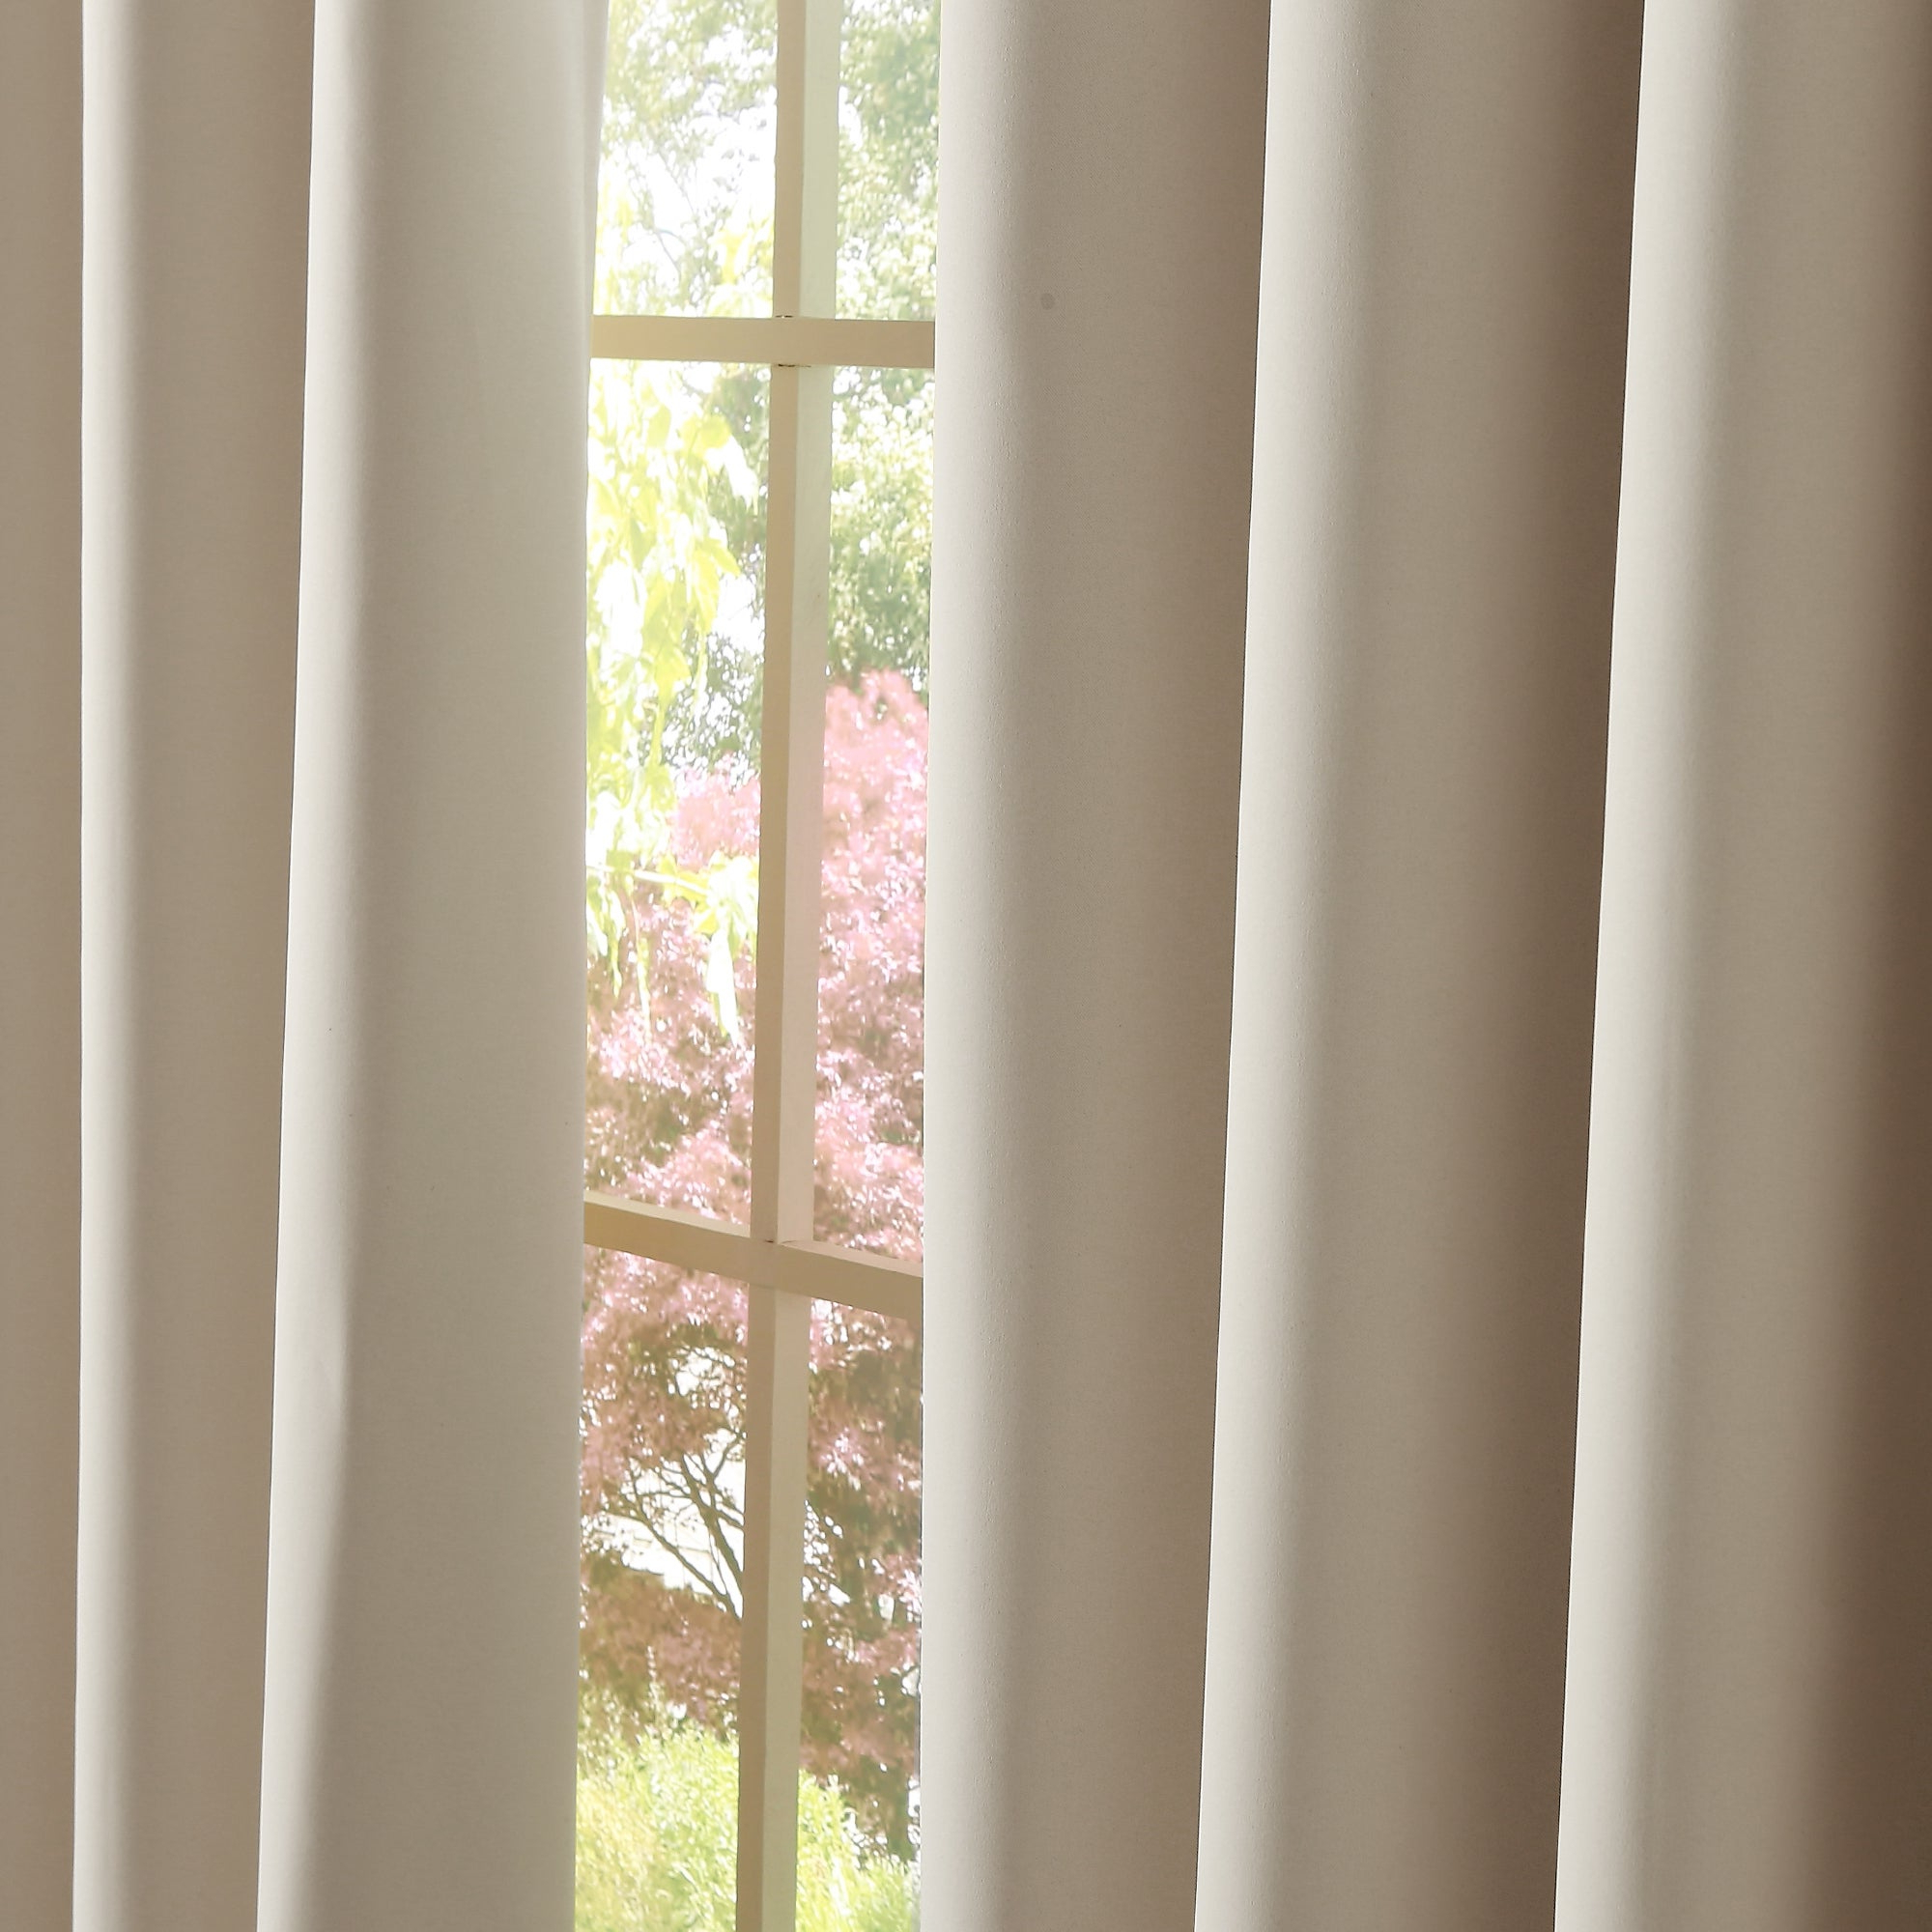 Aurora Home Silvertone Grommet Thermal Insulated Blackout Curtain Panel Pair In 2021 Silvertone Grommet Thermal Insulated Blackout Curtain Panel Pairs (View 12 of 20)